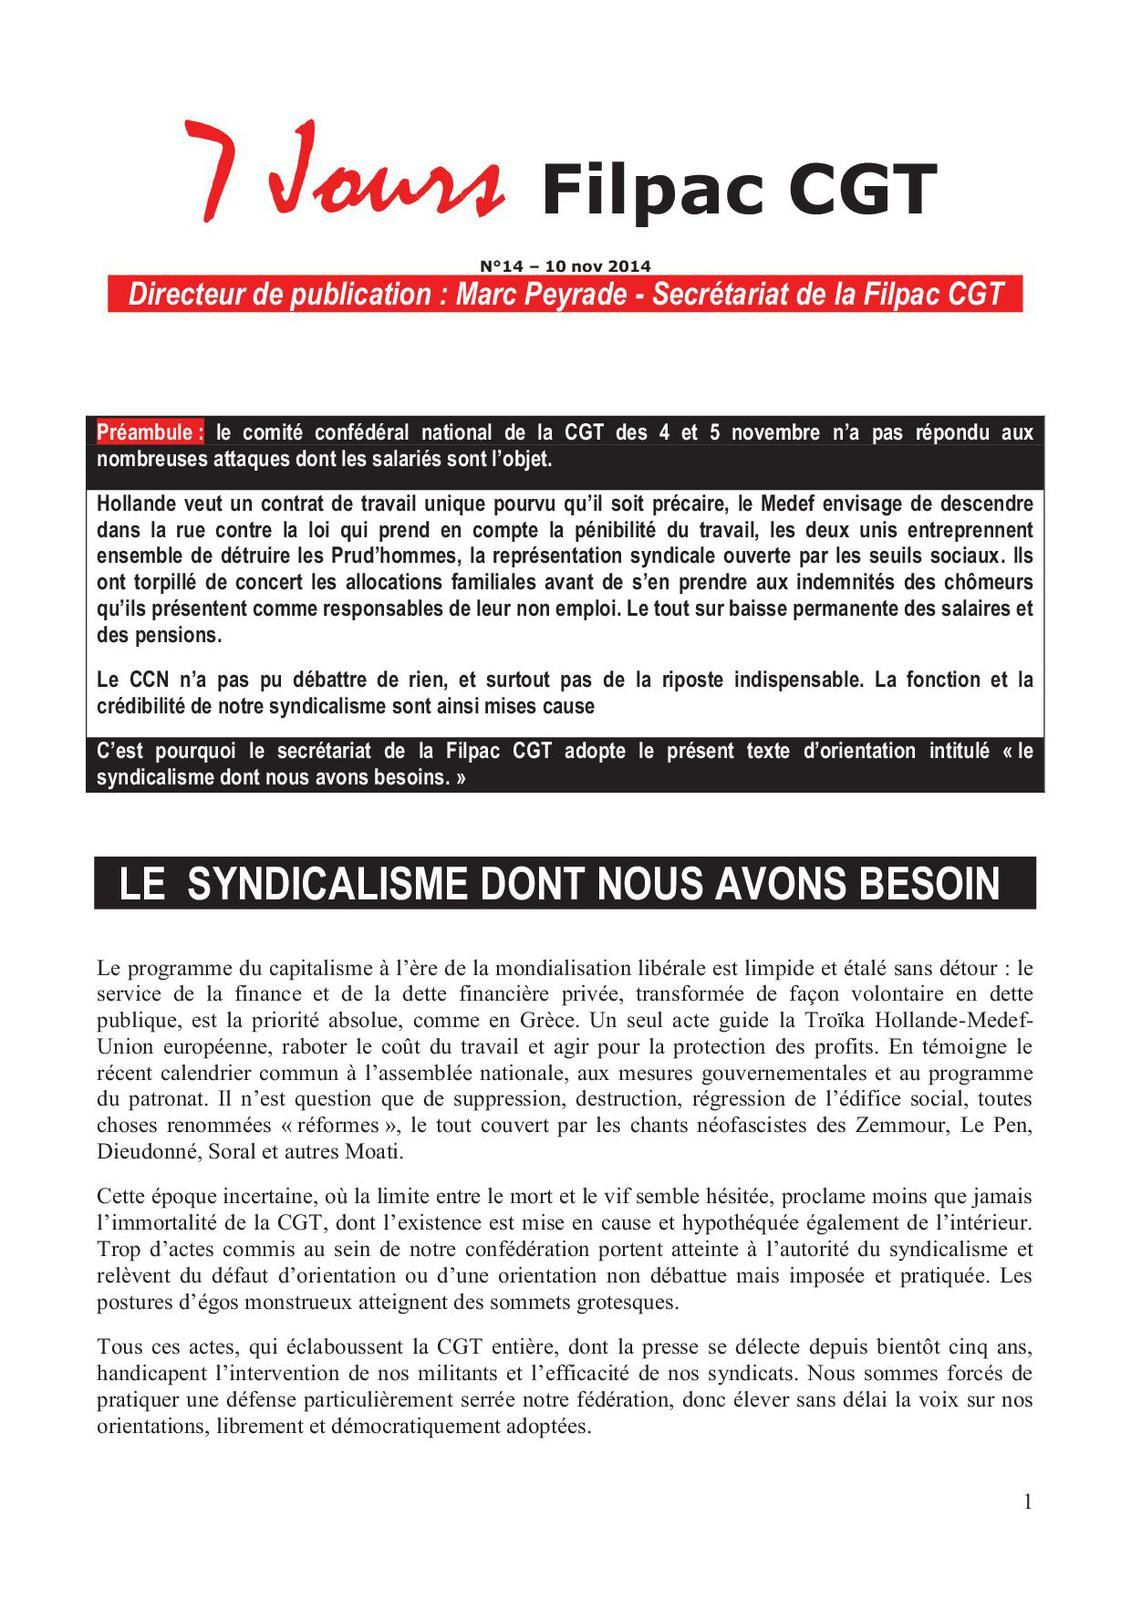 LE  SYNDICALISME DONT NOUS AVONS BESOIN